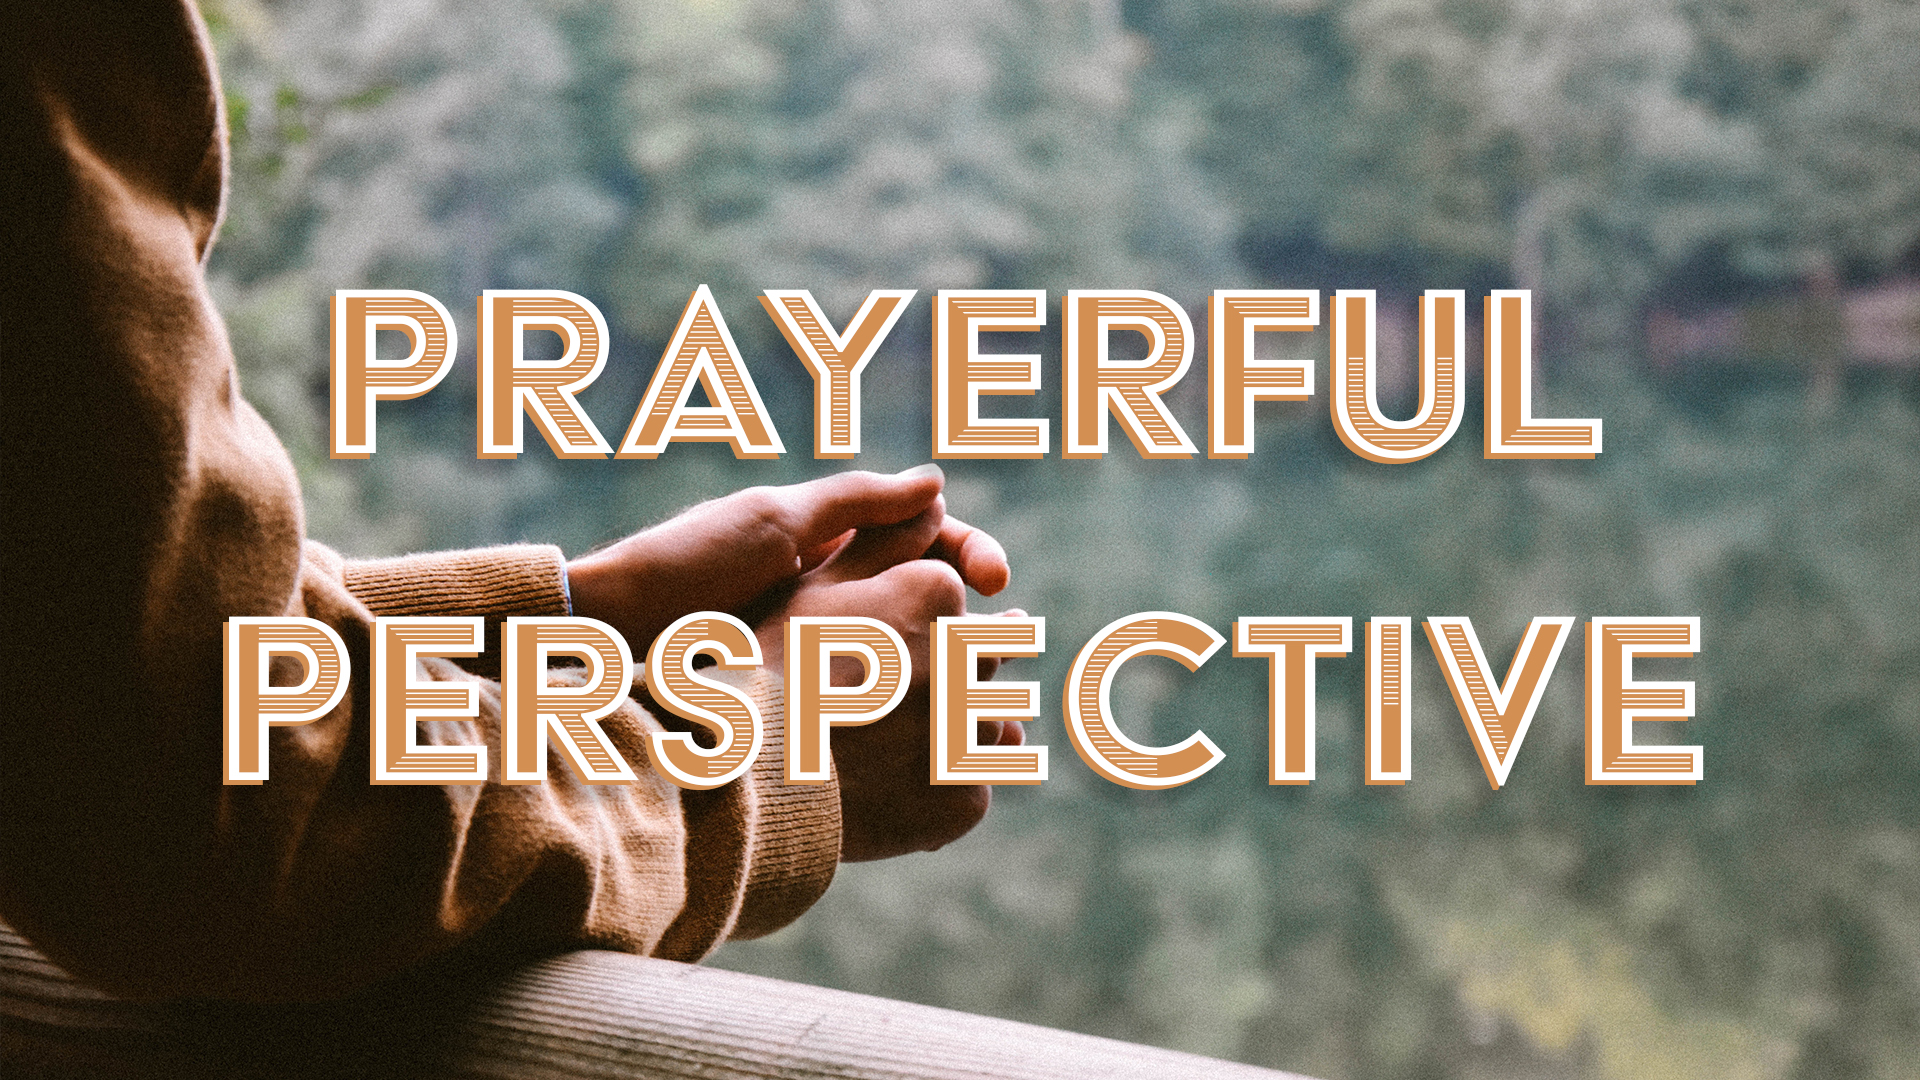 Prayerful Perspective